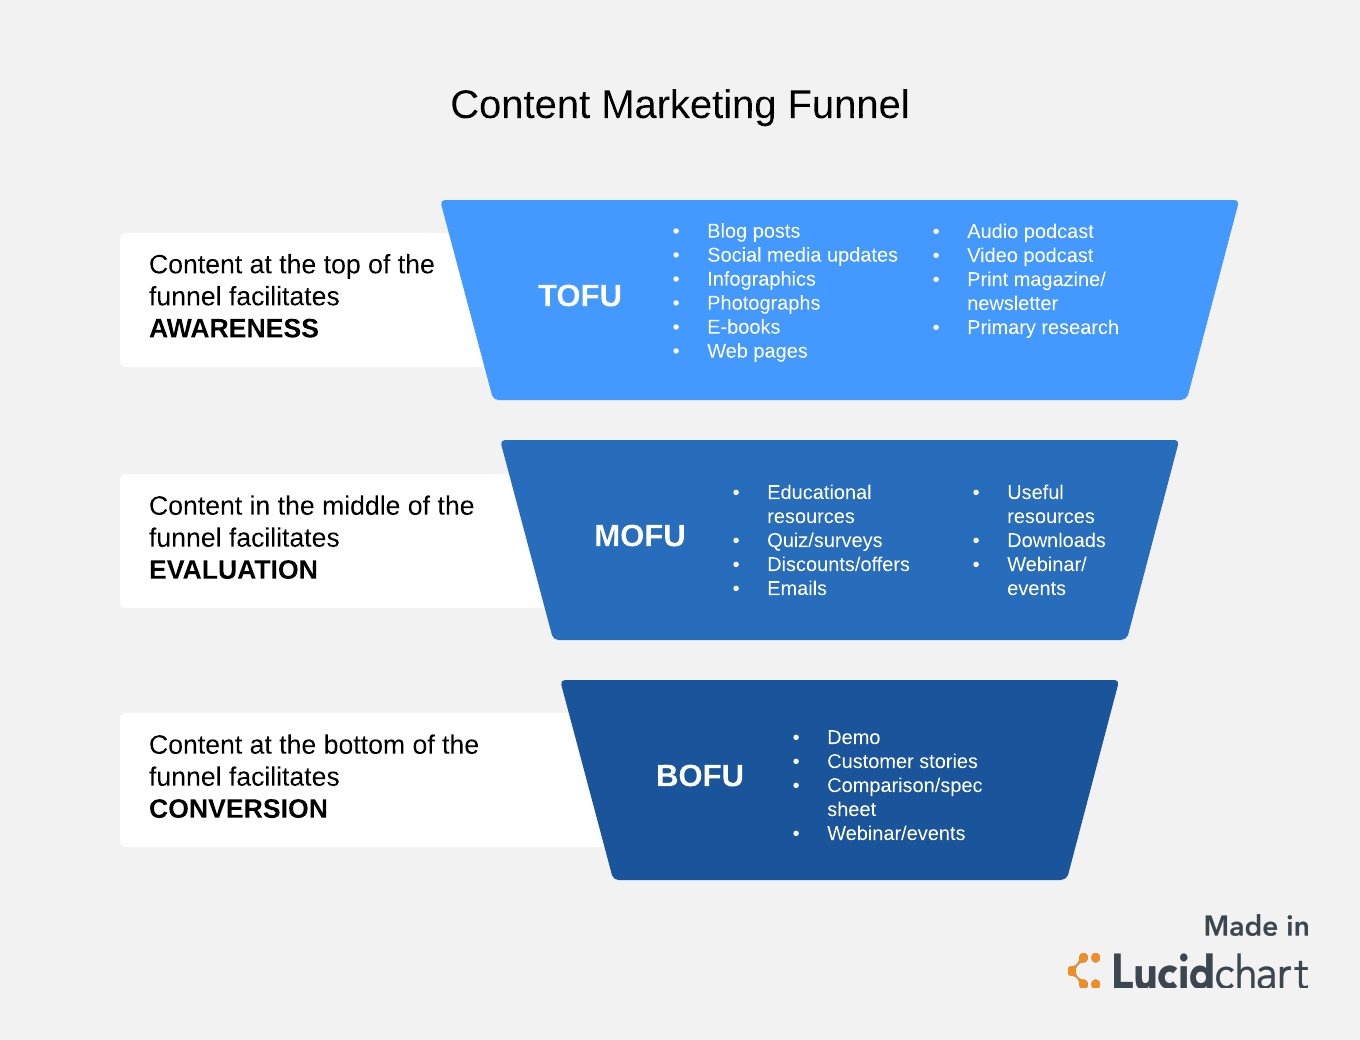 Marketing Funnel Template Pictures Of Content Marketing Funnel